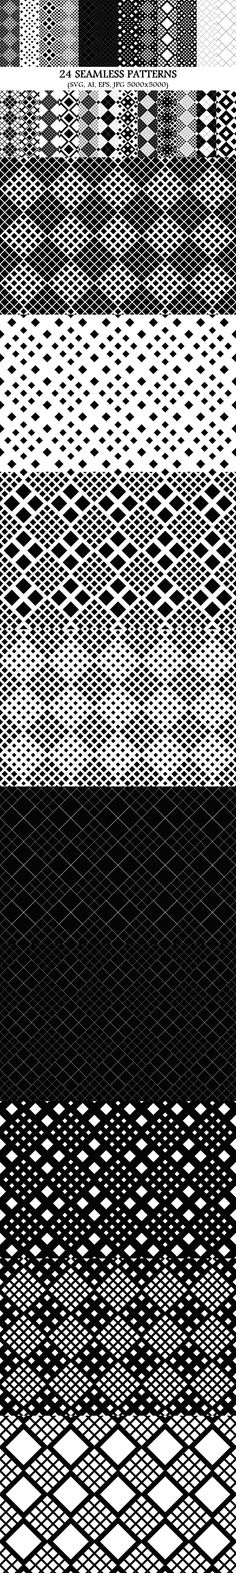 24 Seamless Square Patterns #AbstractBackgrounds #CheapBackground #BackgroundSets #GeometricDesign #DiscountPattern #squarepatterns #SquareBackgrounds #pattern #BackgroundSet #BackgroundDesign #SeamlessPatterns #sale #squareGraphics #abstractbackgrounds #PatternSet #CheapVectorGraphics #monochromepattern #PatternSet #pattern